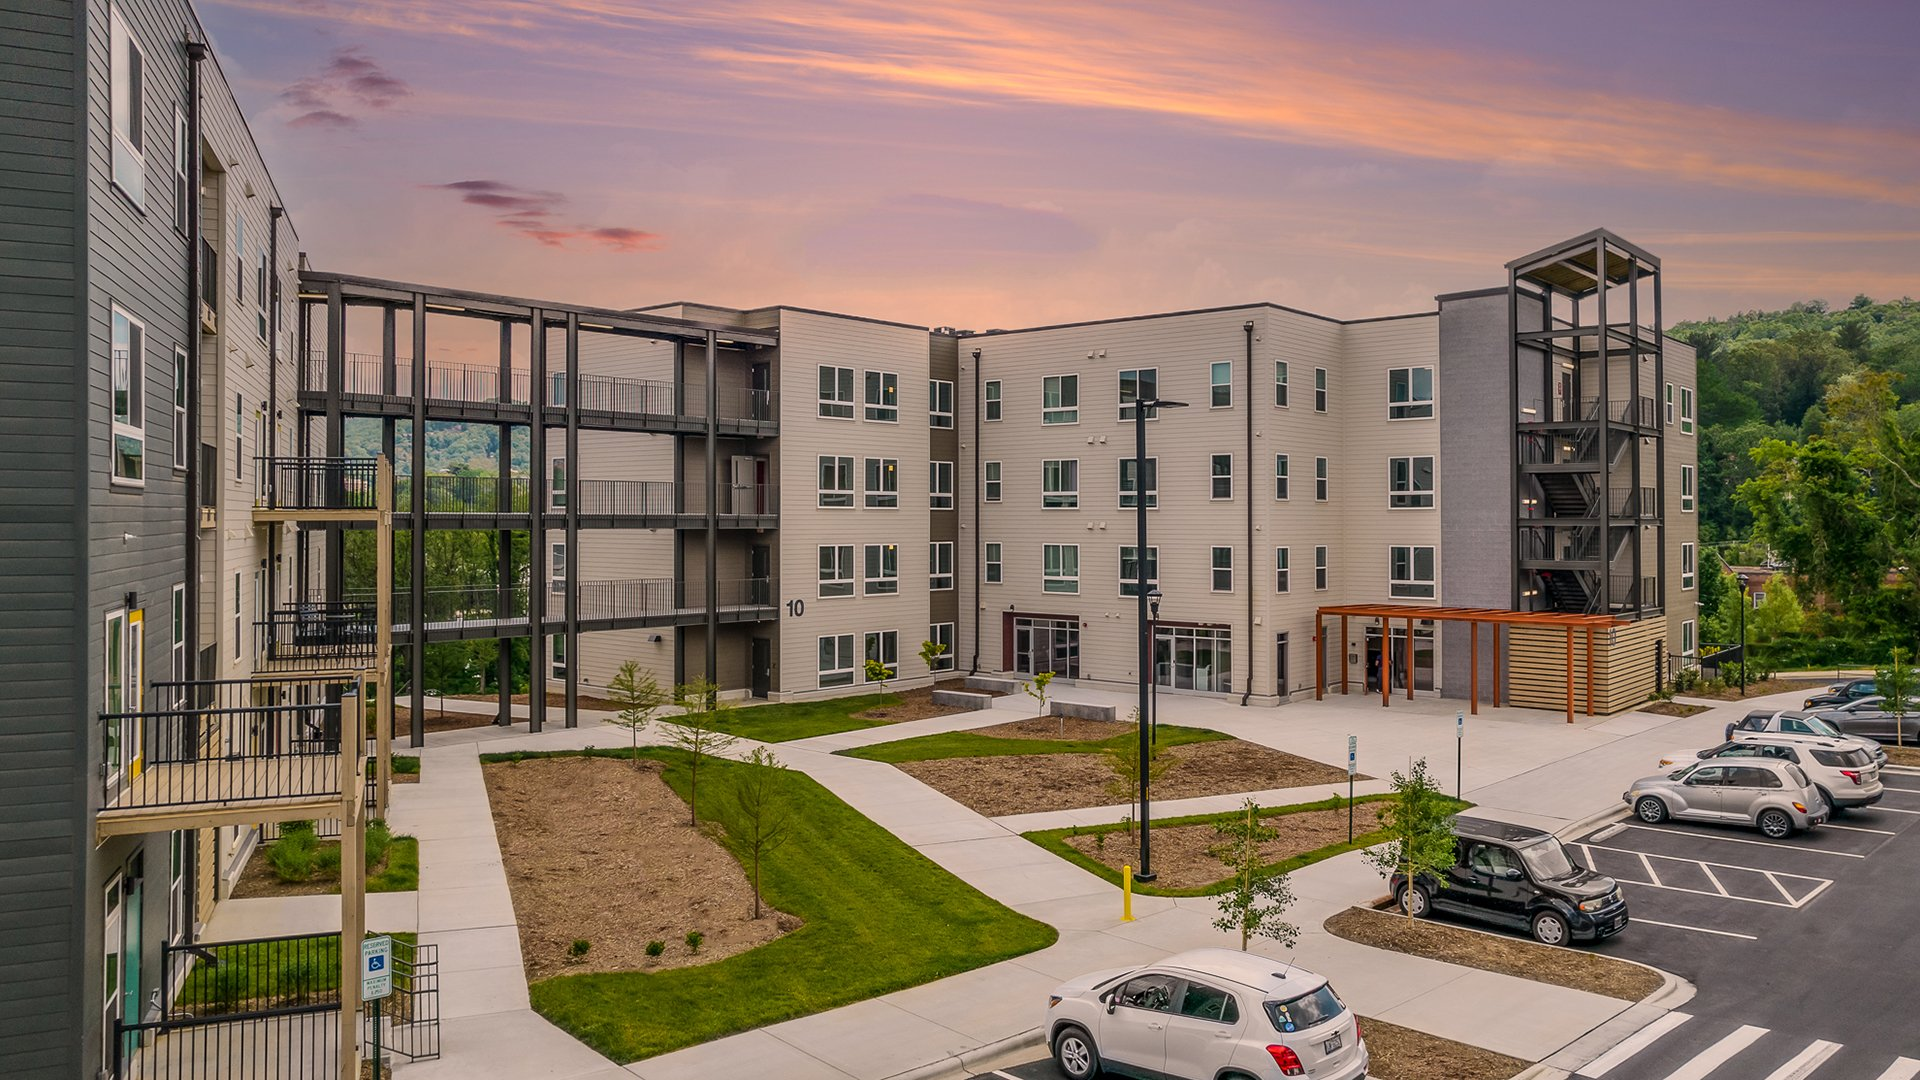 New Maple Crest Public Housing Nears Completion in Asheville